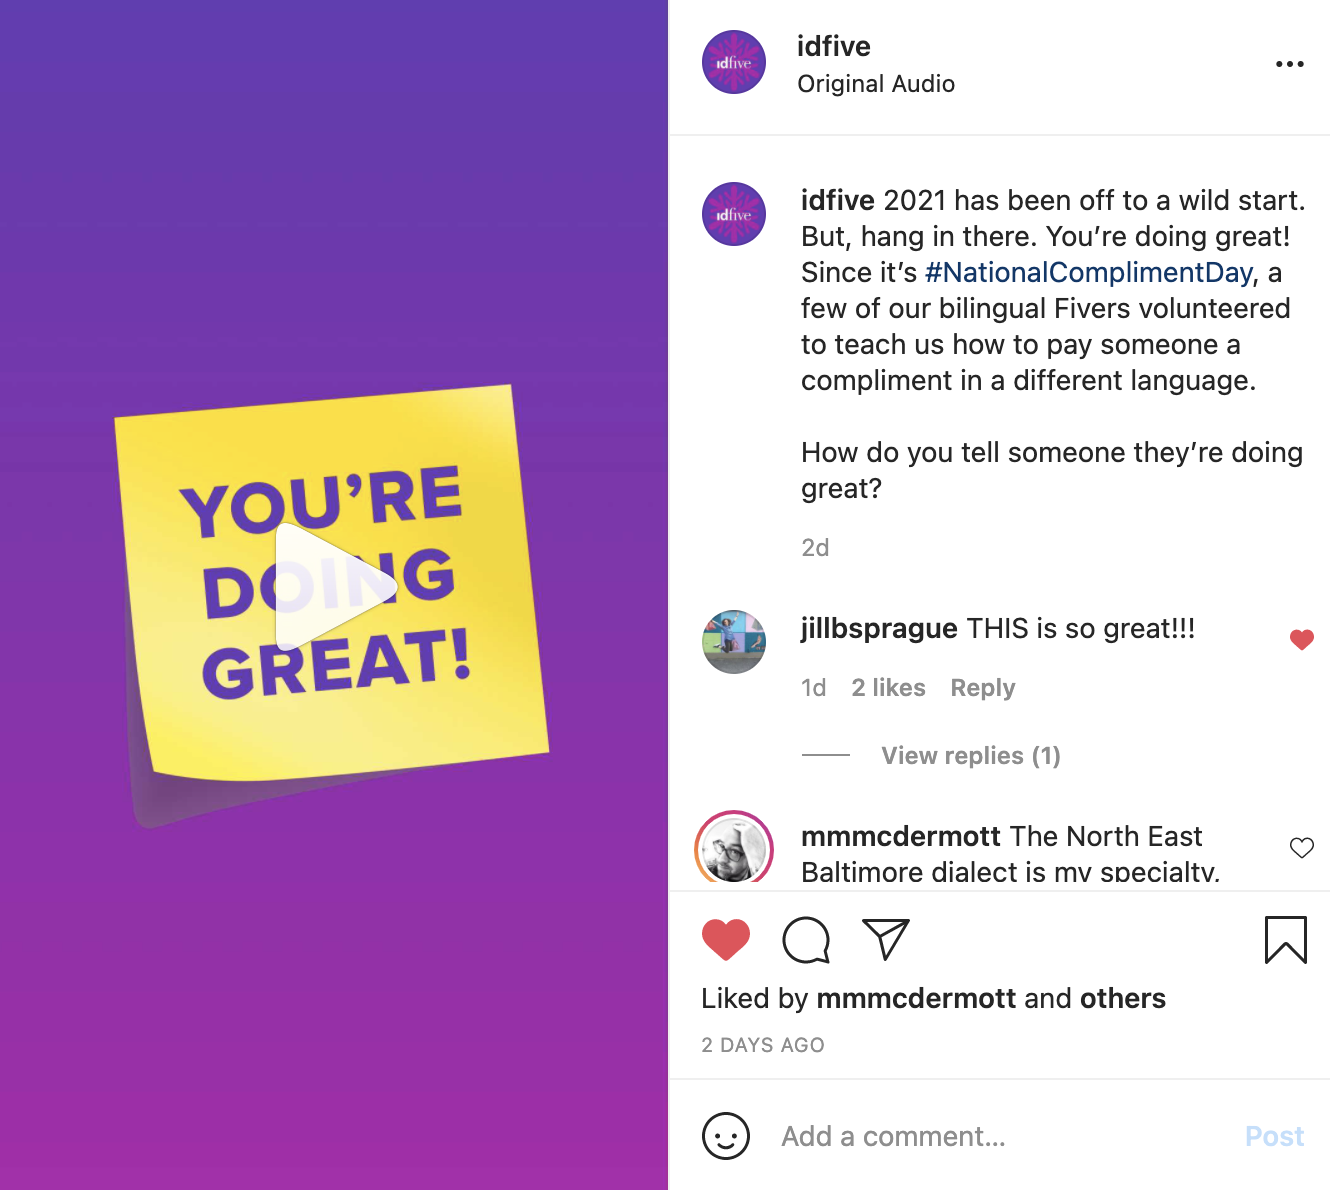 idfive Social Media Strategy & Creative Direction